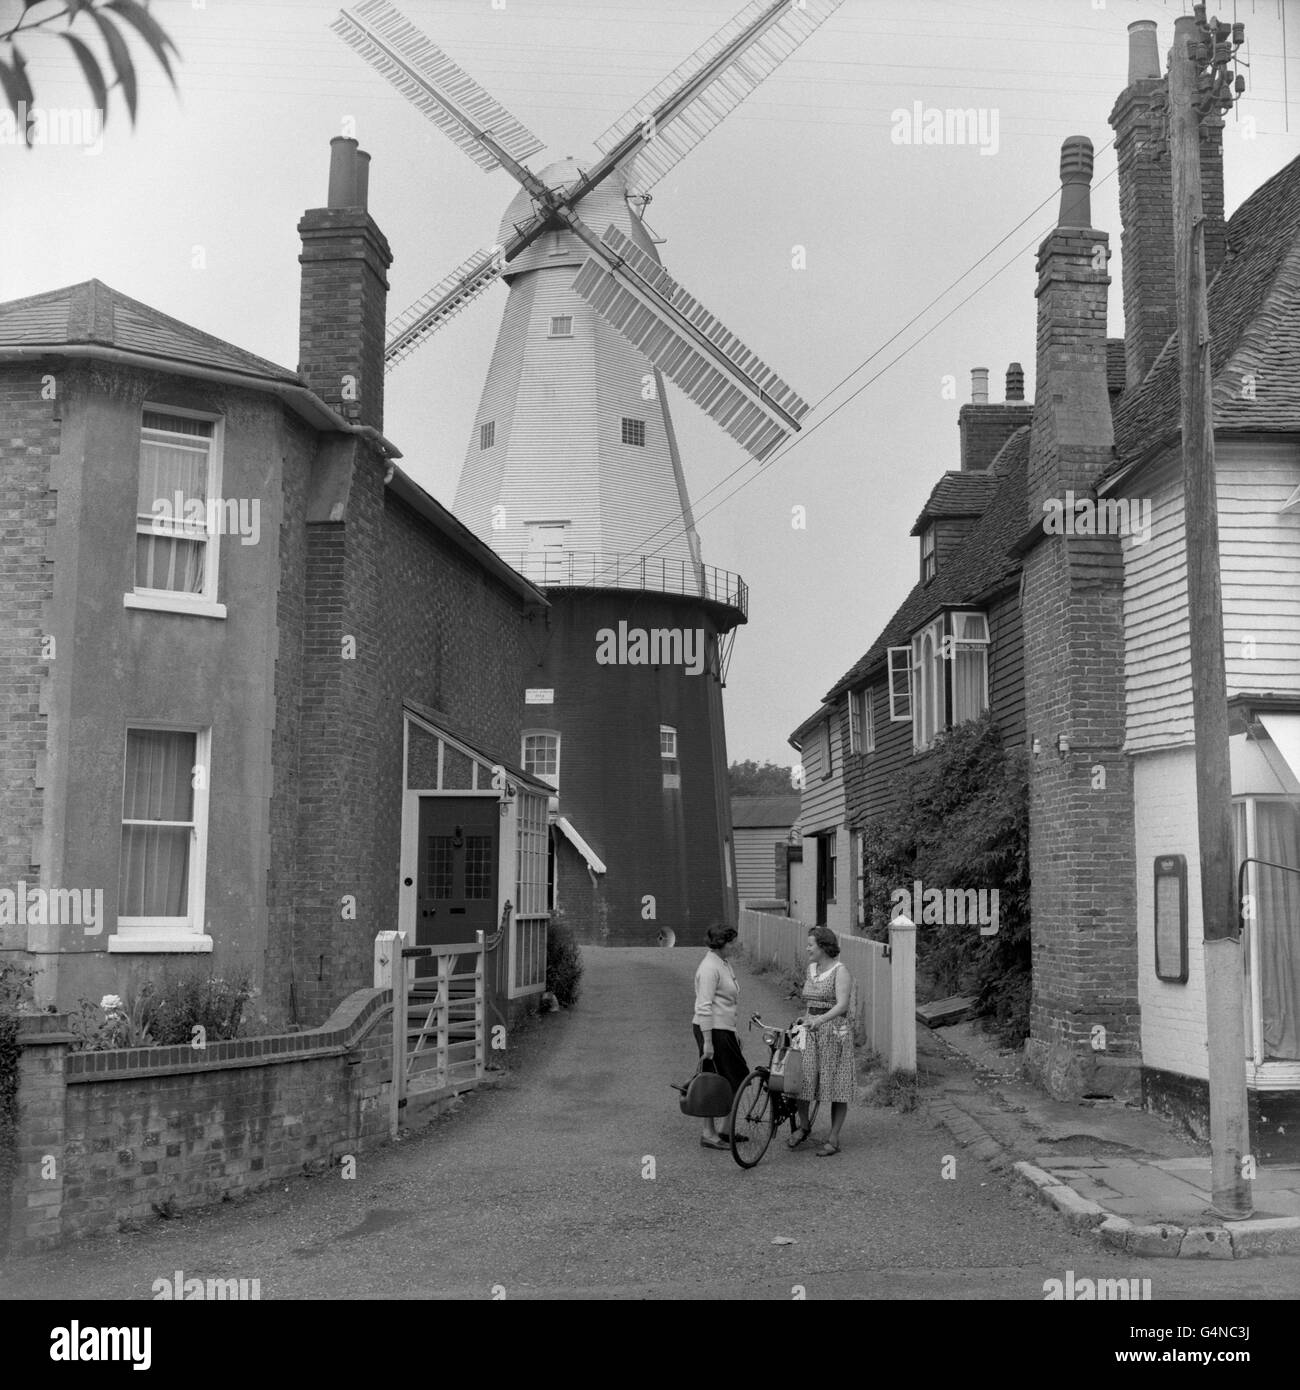 Buildings and Landmarks - Windmills - Cranbrook - Stock Image